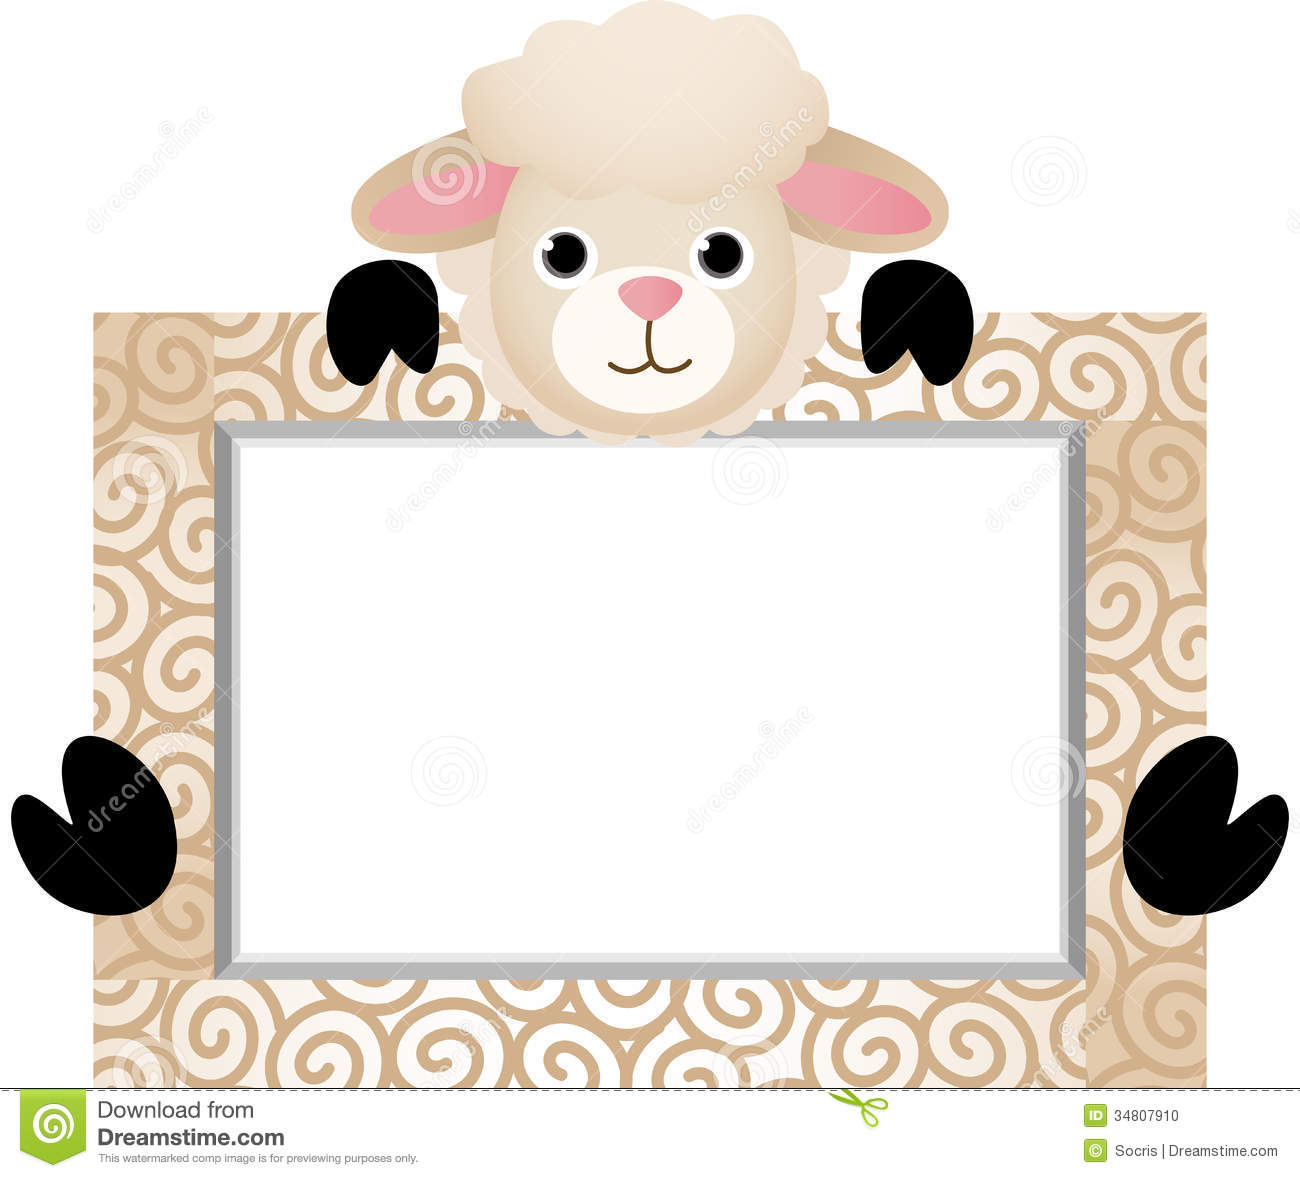 Cute Sheep With Bank Label Stock Vector Illustration Of